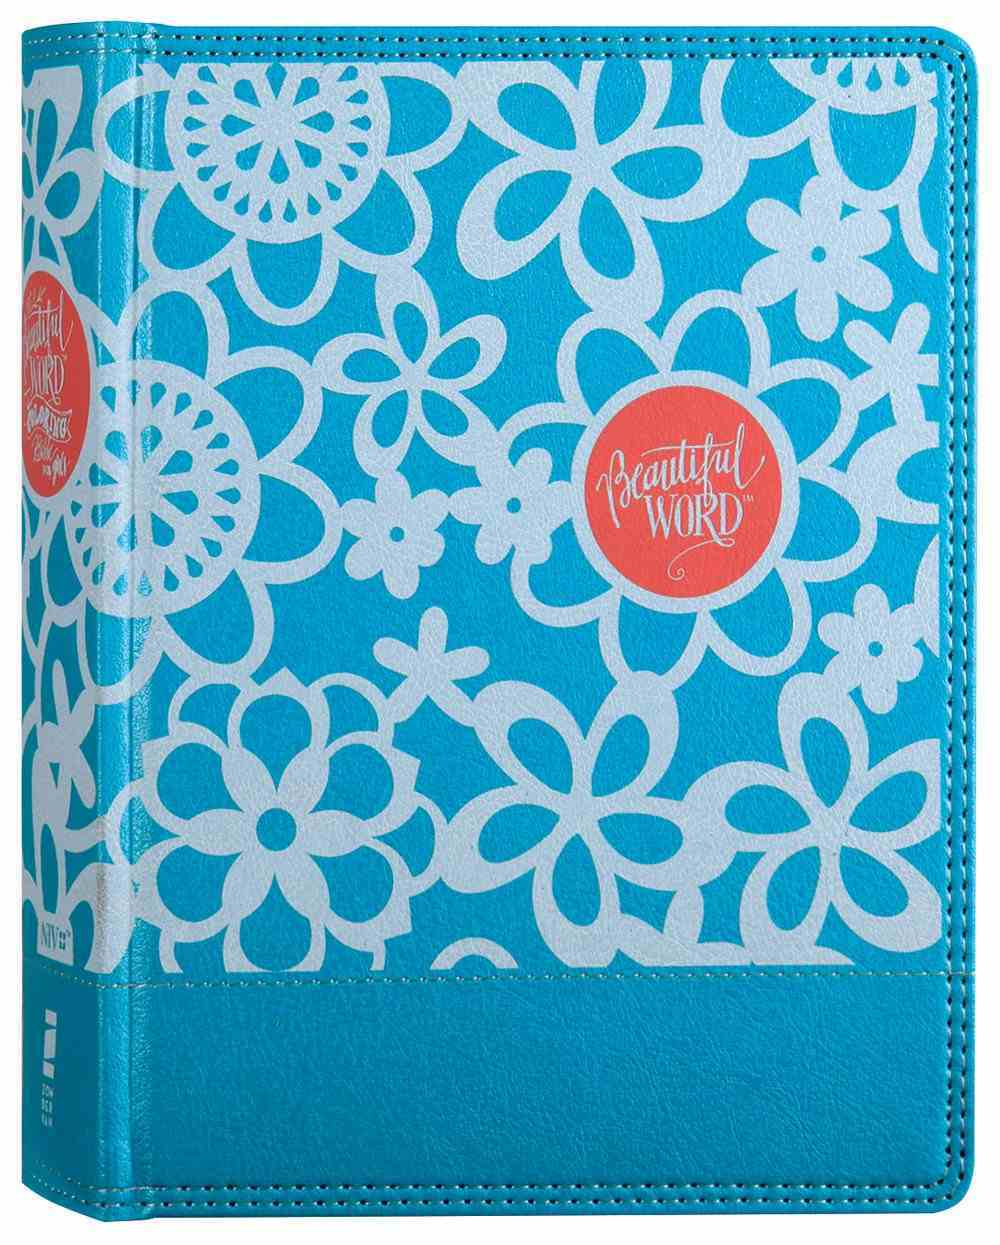 NIV Beautiful Word Coloring Bible For Girls Teal (Black Letter Edition) Premium Imitation Leather